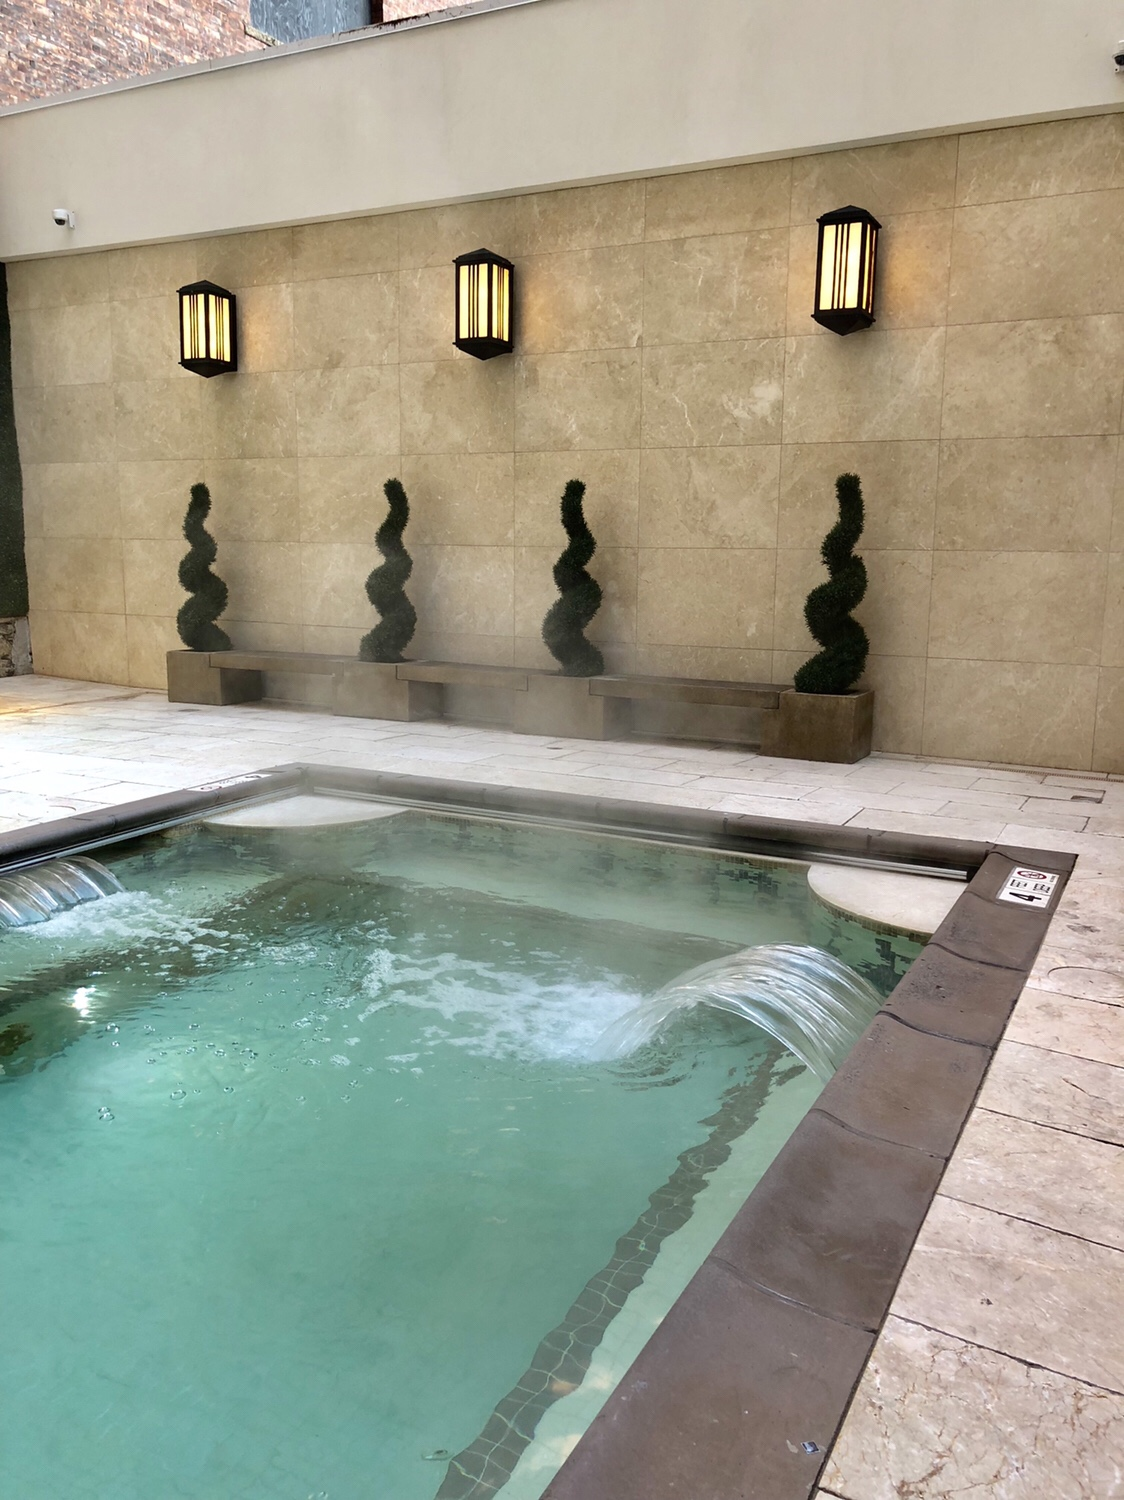 Luxurious Hot Springs at the Curtiss Hotel #hotspringsbuffalo #buffalony #curtisshotel #buffalohotels #luxuryhotels